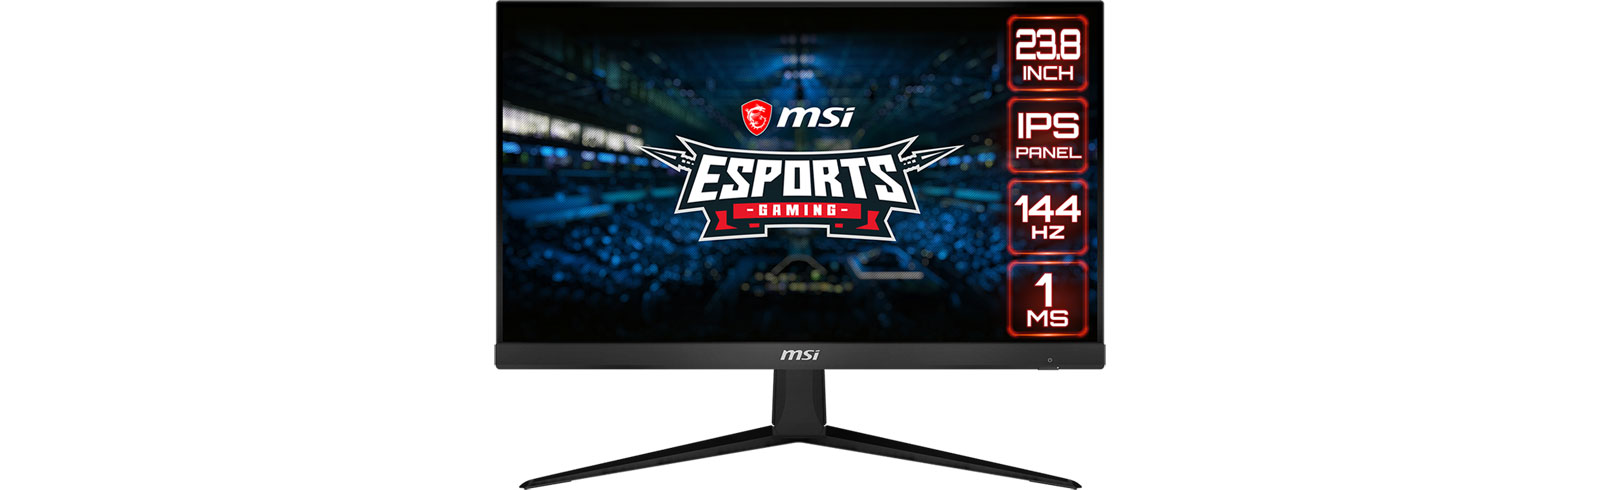 MSI G271 and MSI G241 eSports monitors go official